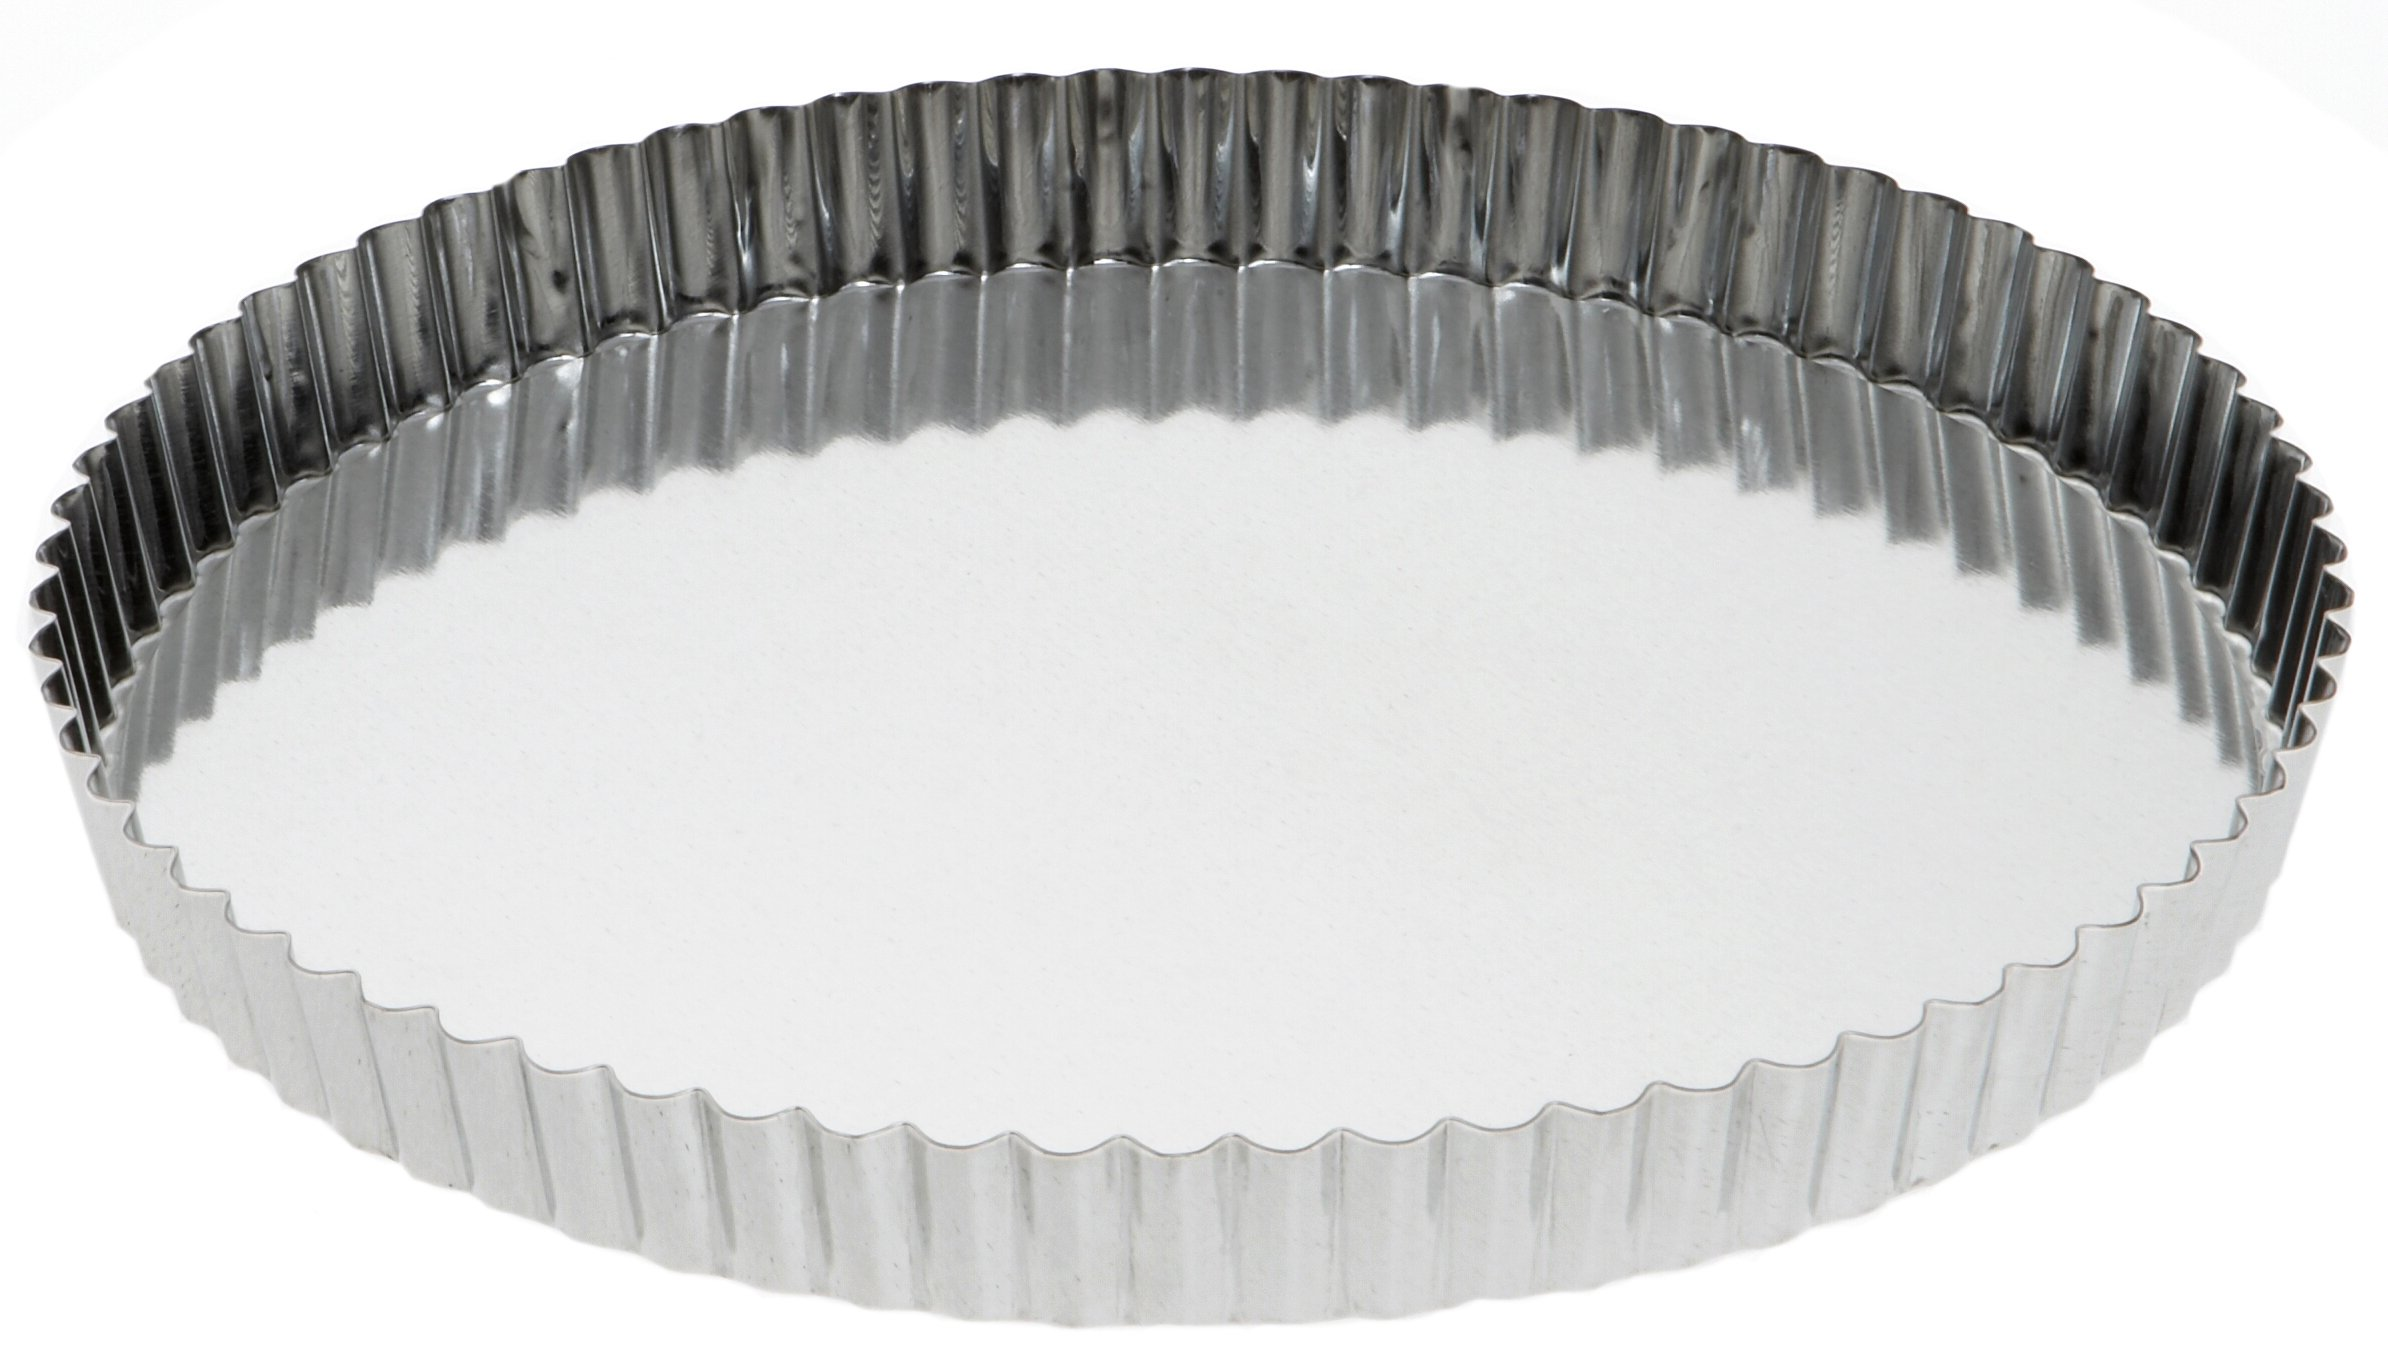 SCI Scandicrafts Fluted Tart/Quiche Mold, Removable Bottom 12.5-inch Diameter by 1-inch Deep